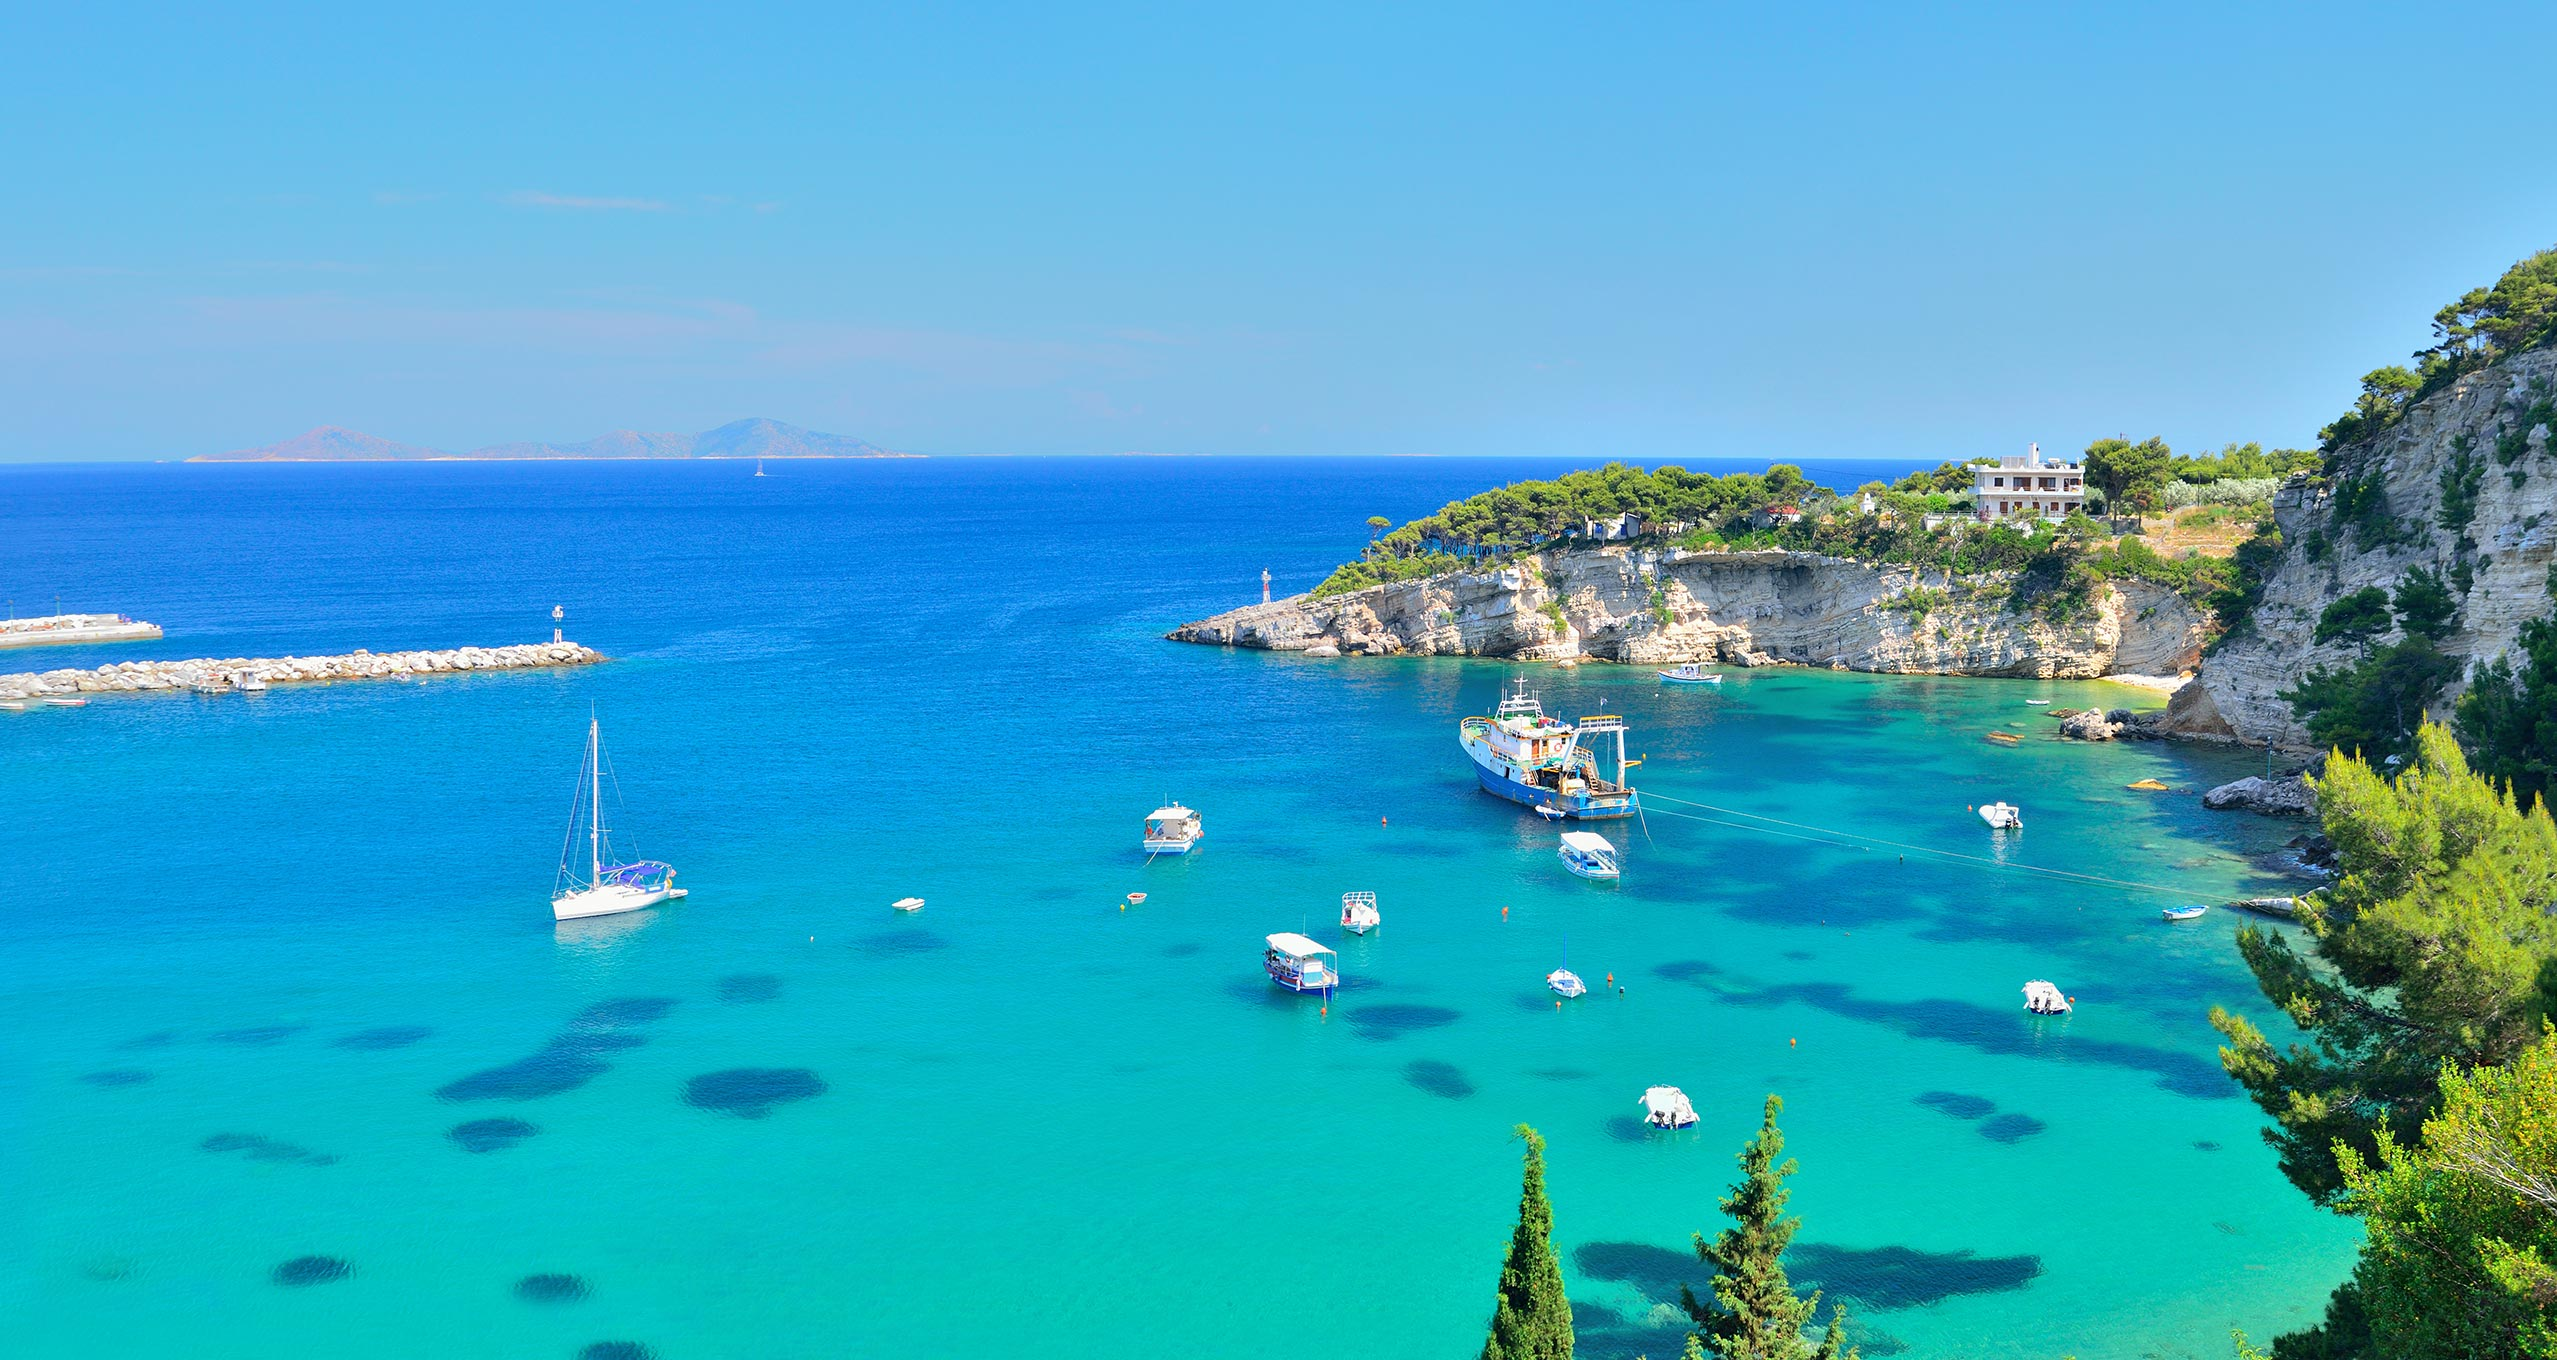 The Greek island Alonnisos is acknowledged as one of the best resorts of eco-tourism in the world